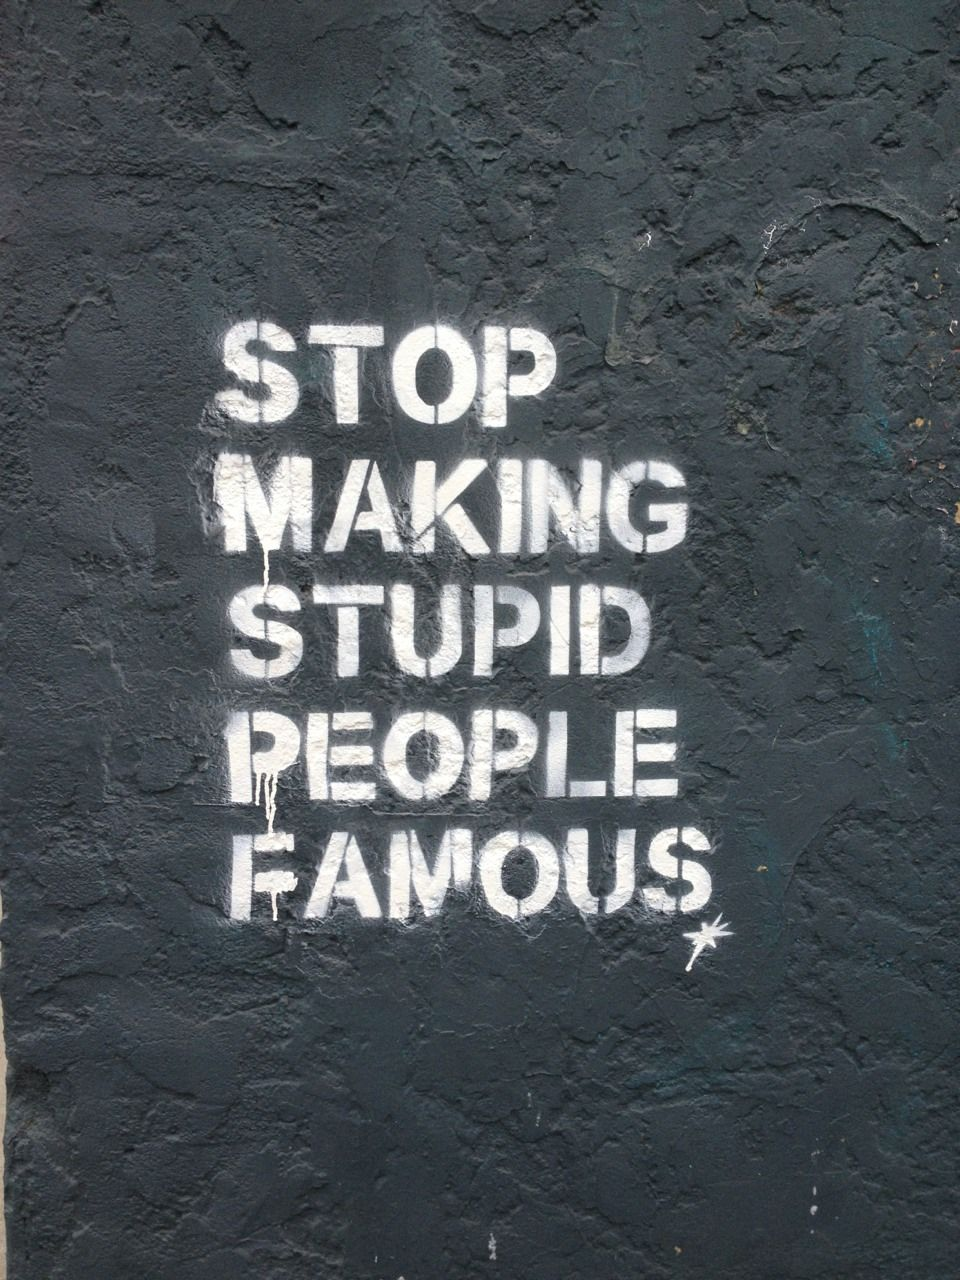 Famous Stupid Quotes: PSA: Stop Making Stupid People Famous